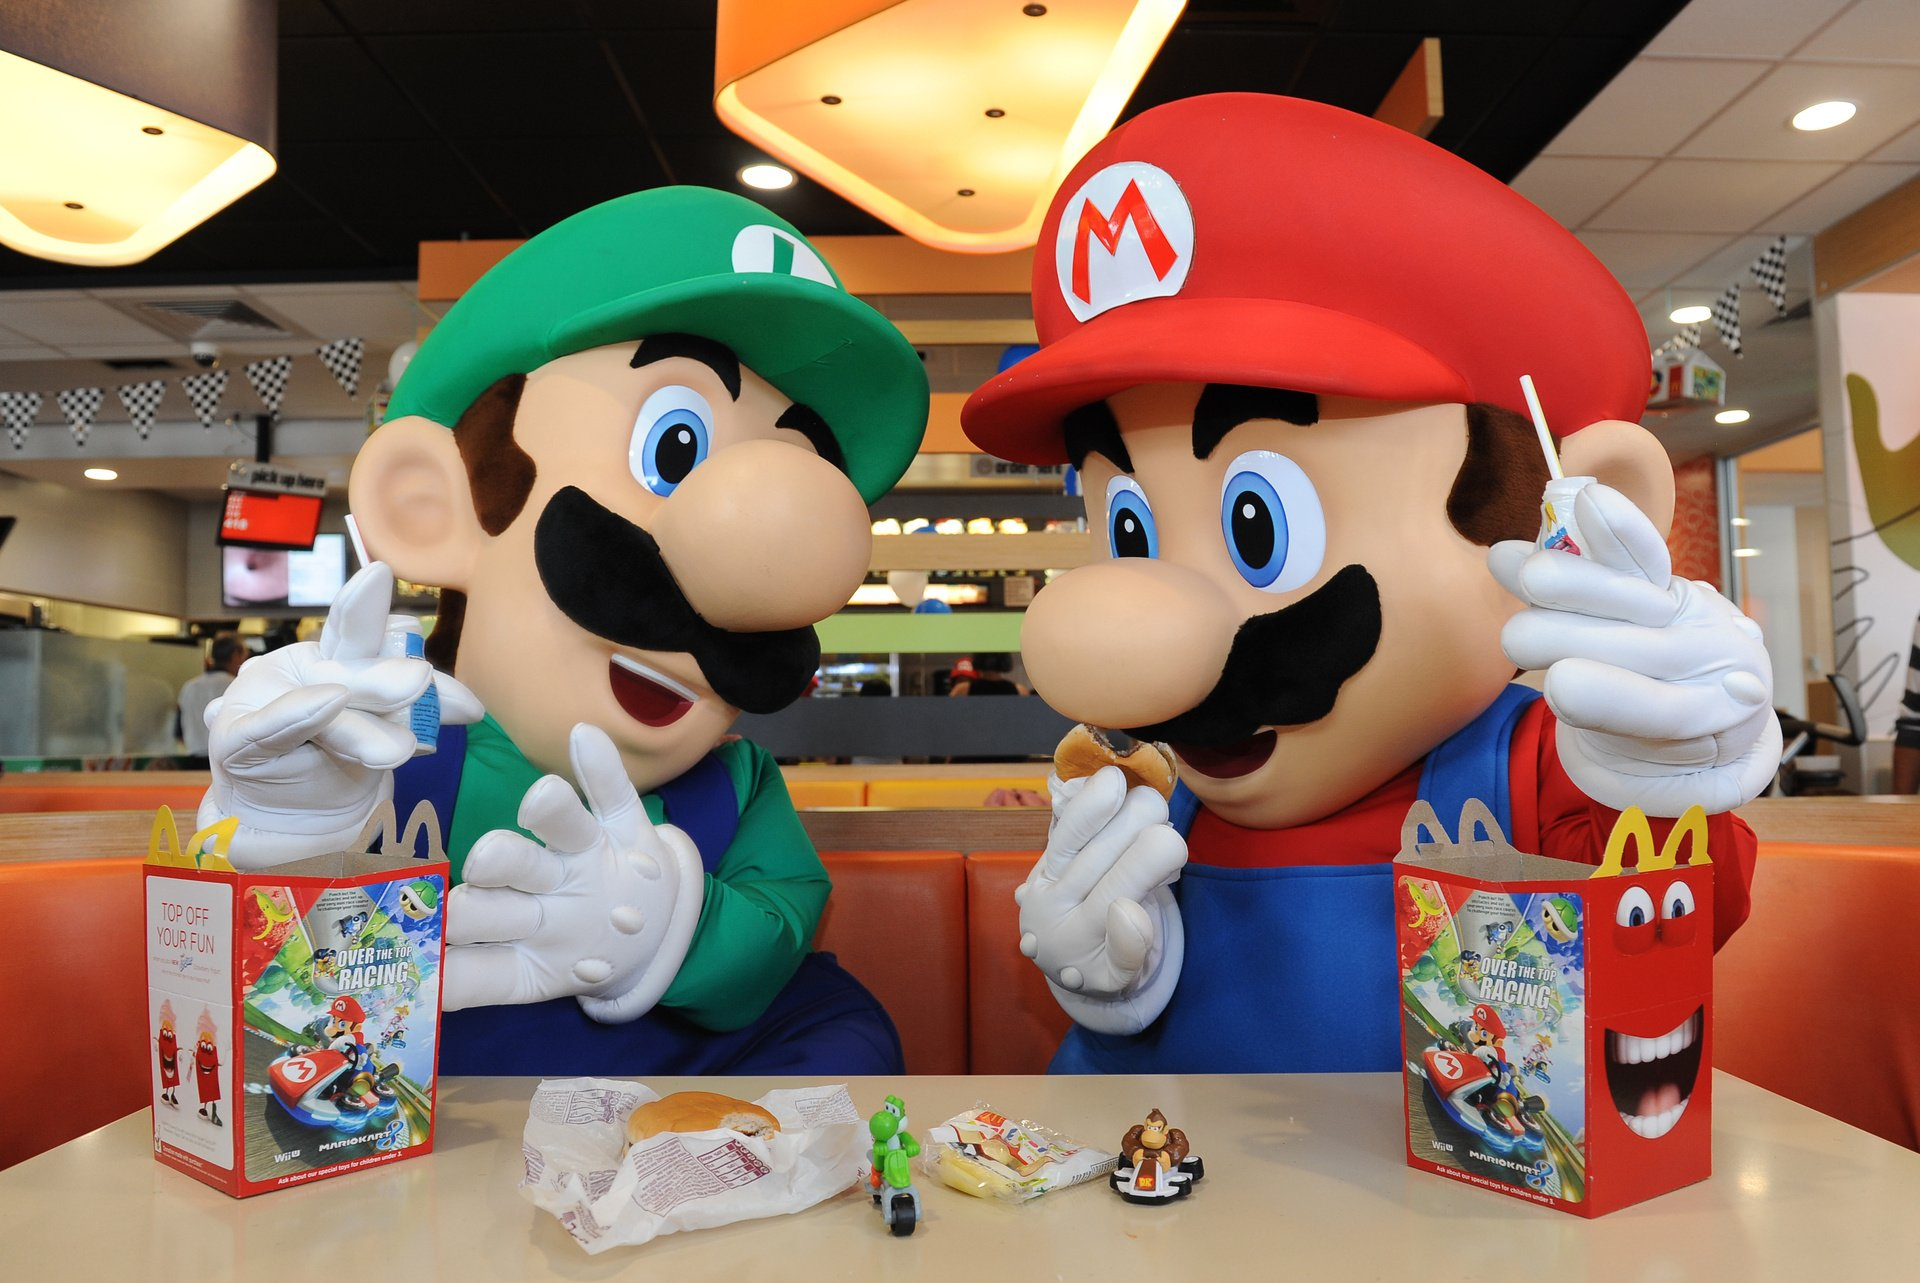 These Lucky Kids Got McDonalds Happy Meal Mario Kart Toys